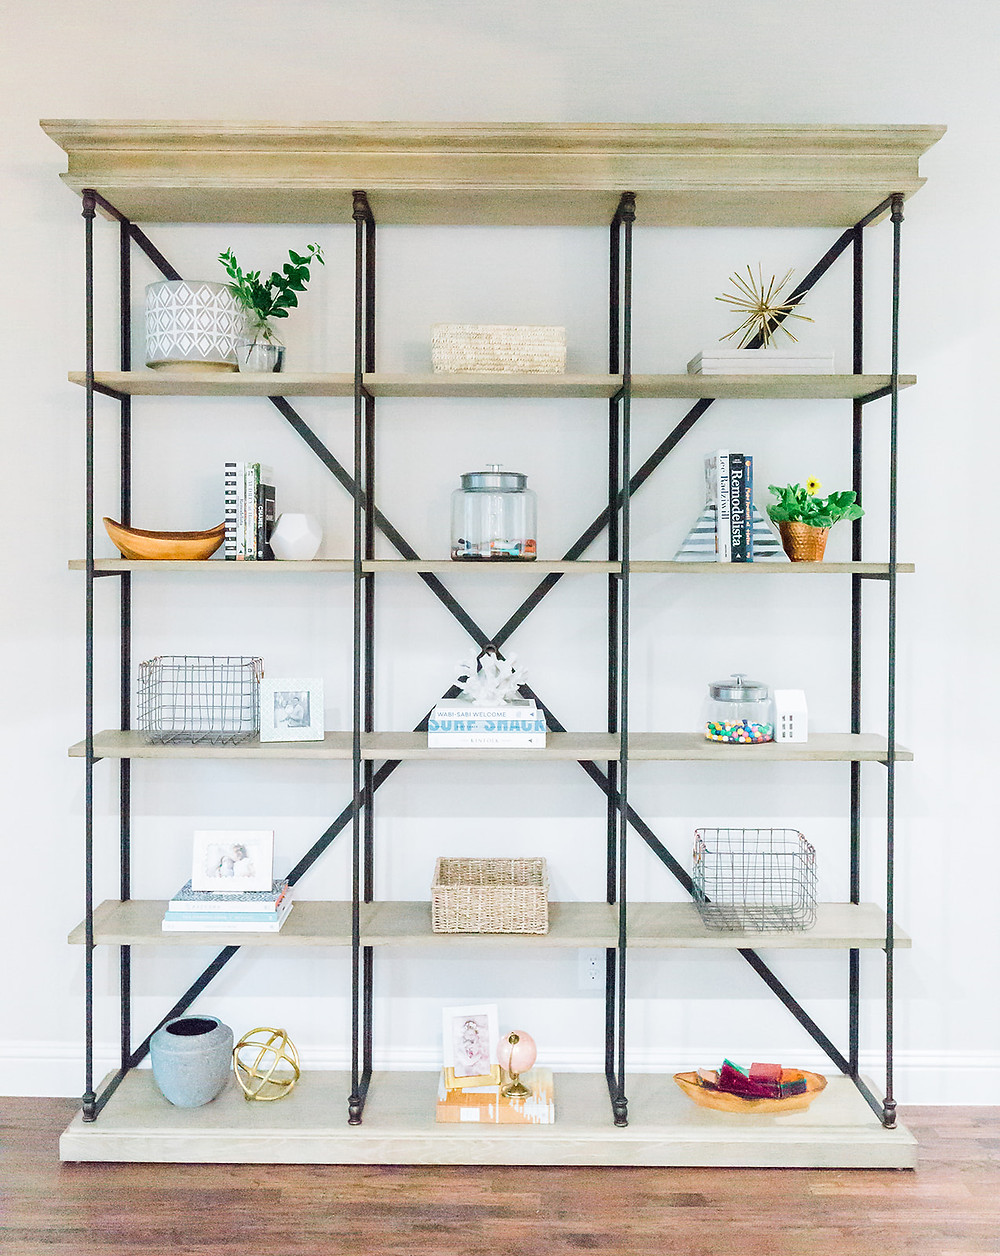 Styled bookshelf design by Laura Design and Co, Dallas based interior designer